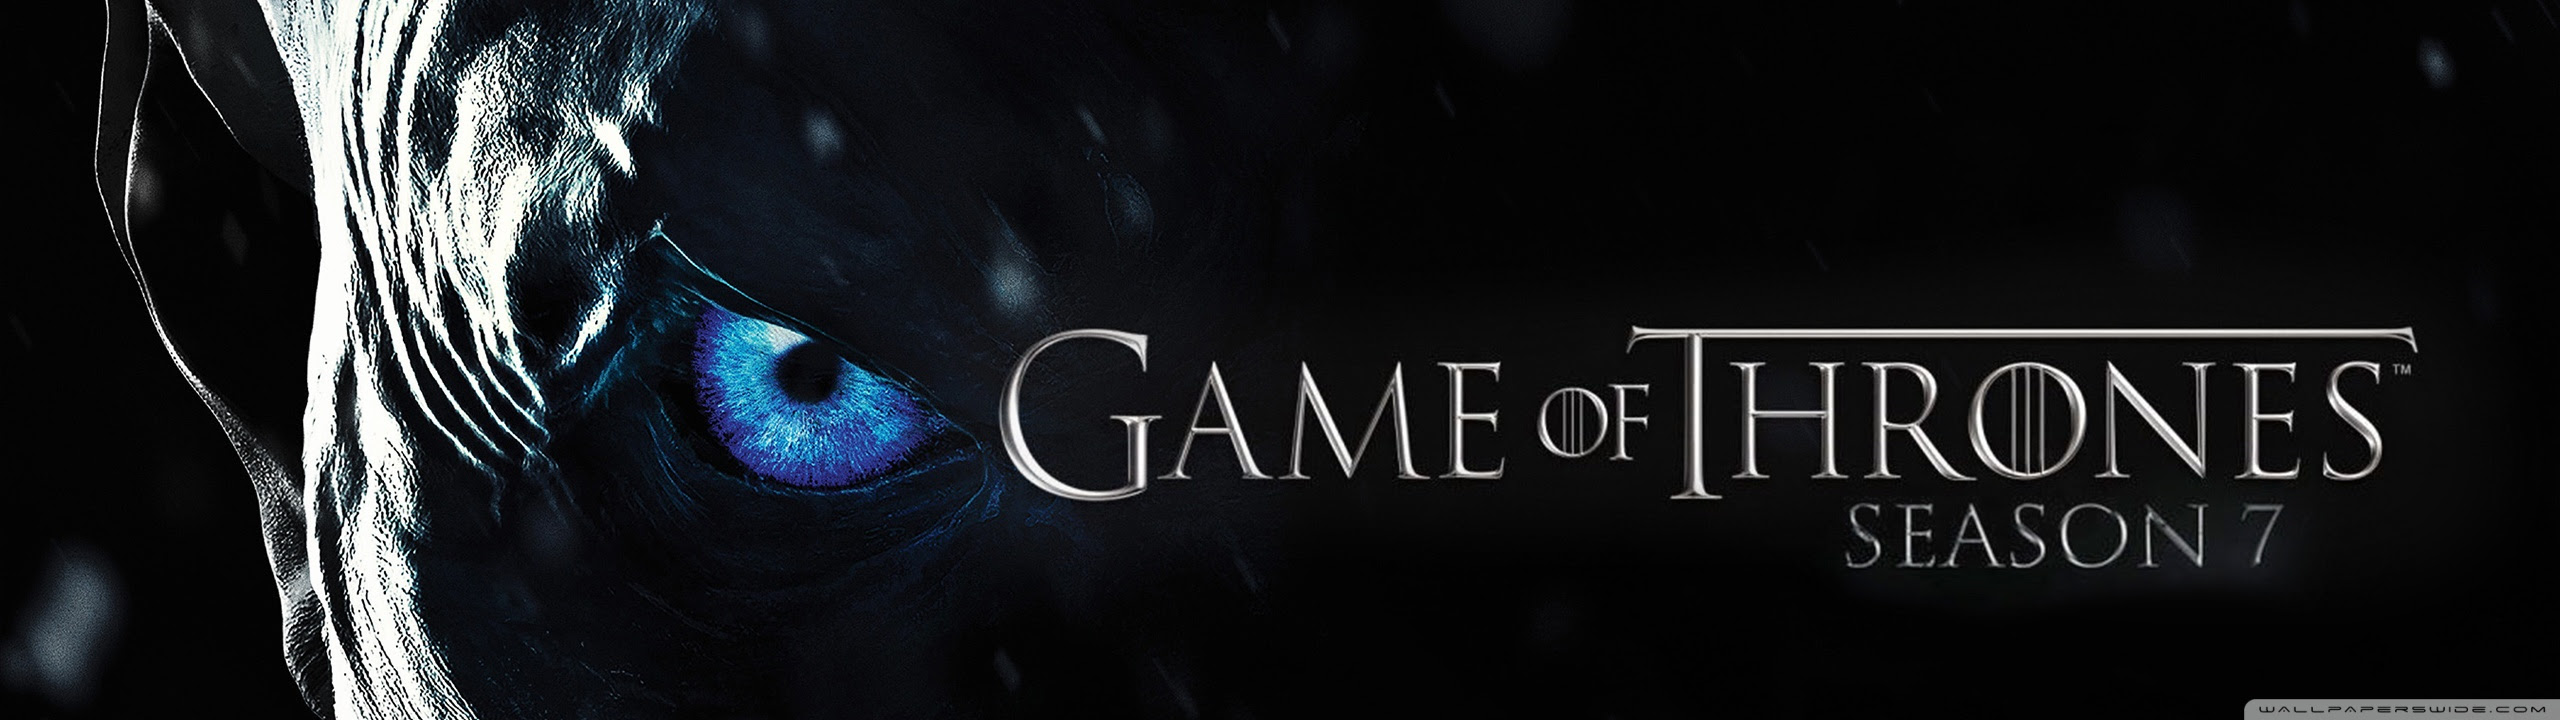 Dual Monitor Wallpaper Game Of Thrones Best Hd Wallpapers